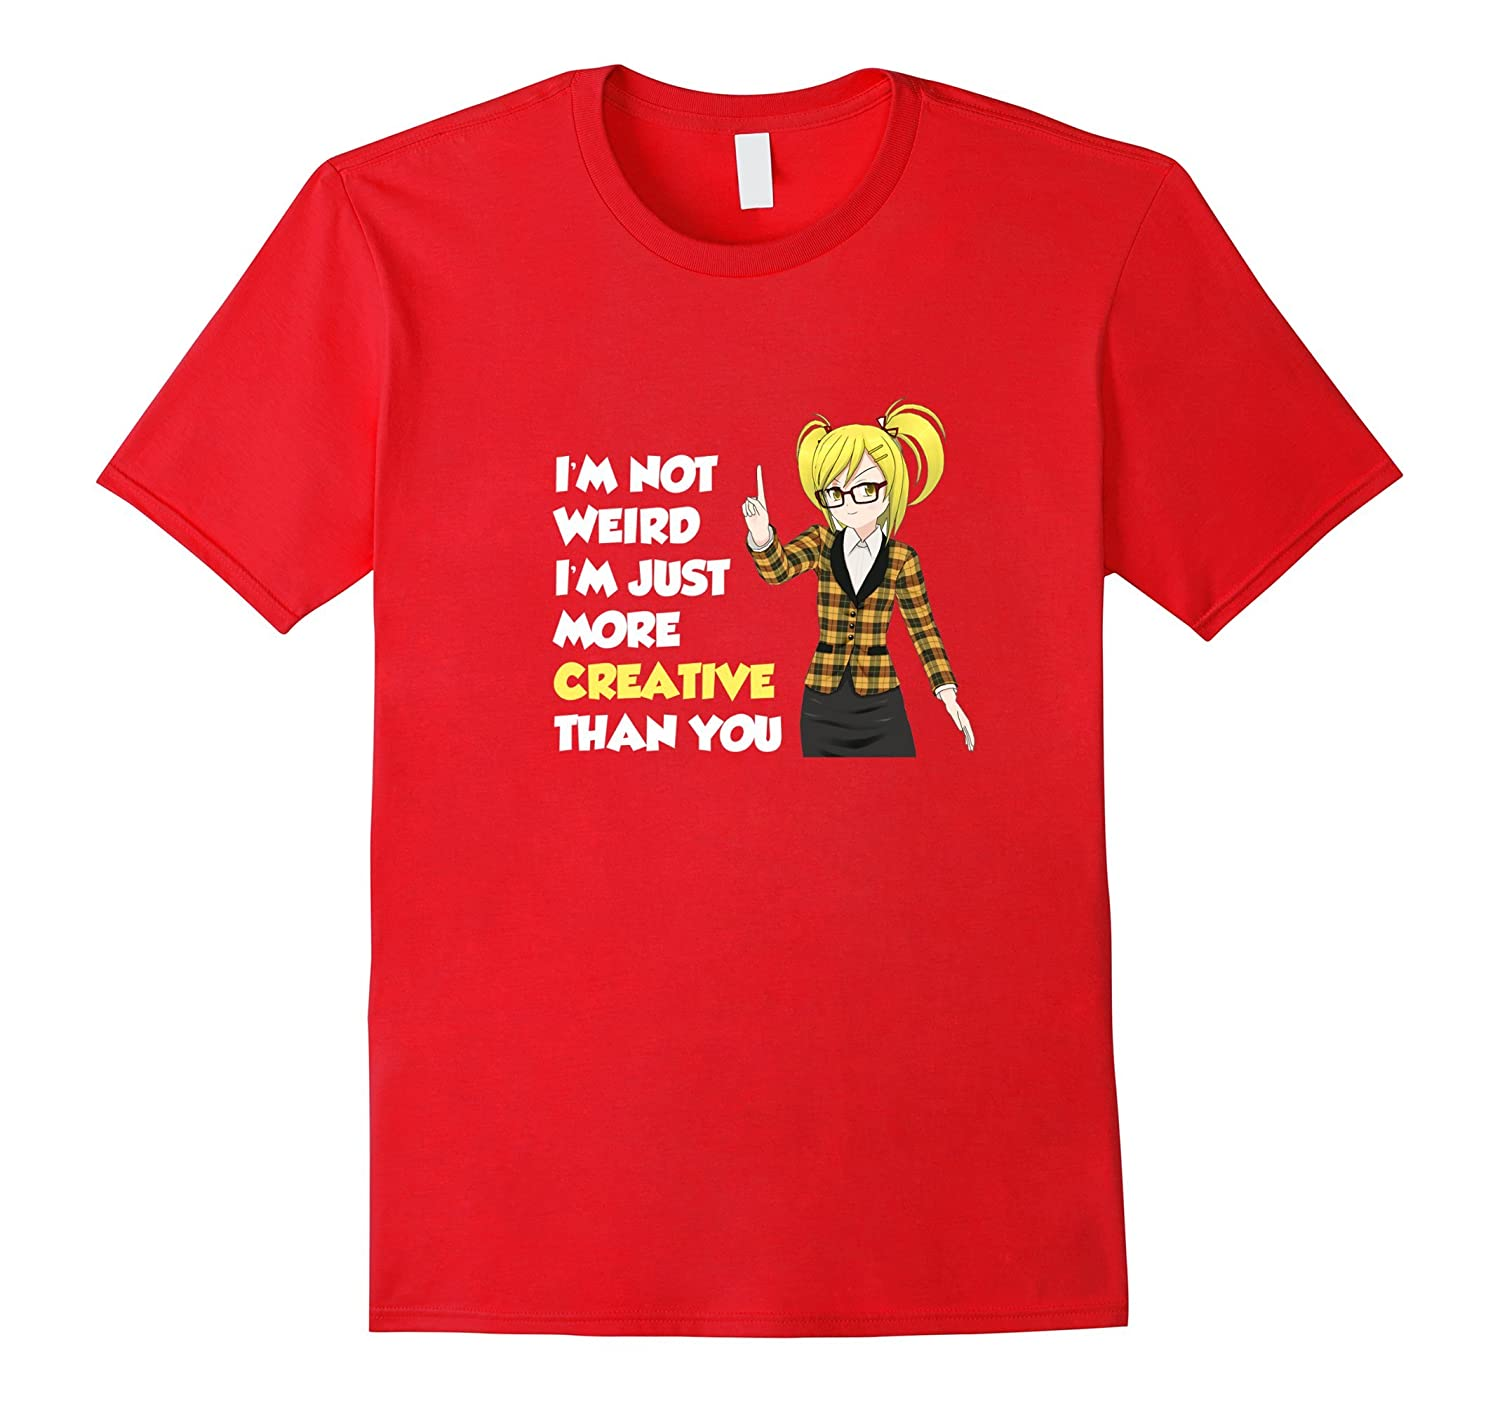 Anime Inspired: I'm Not Weird Just Creative T-Shirt-CL